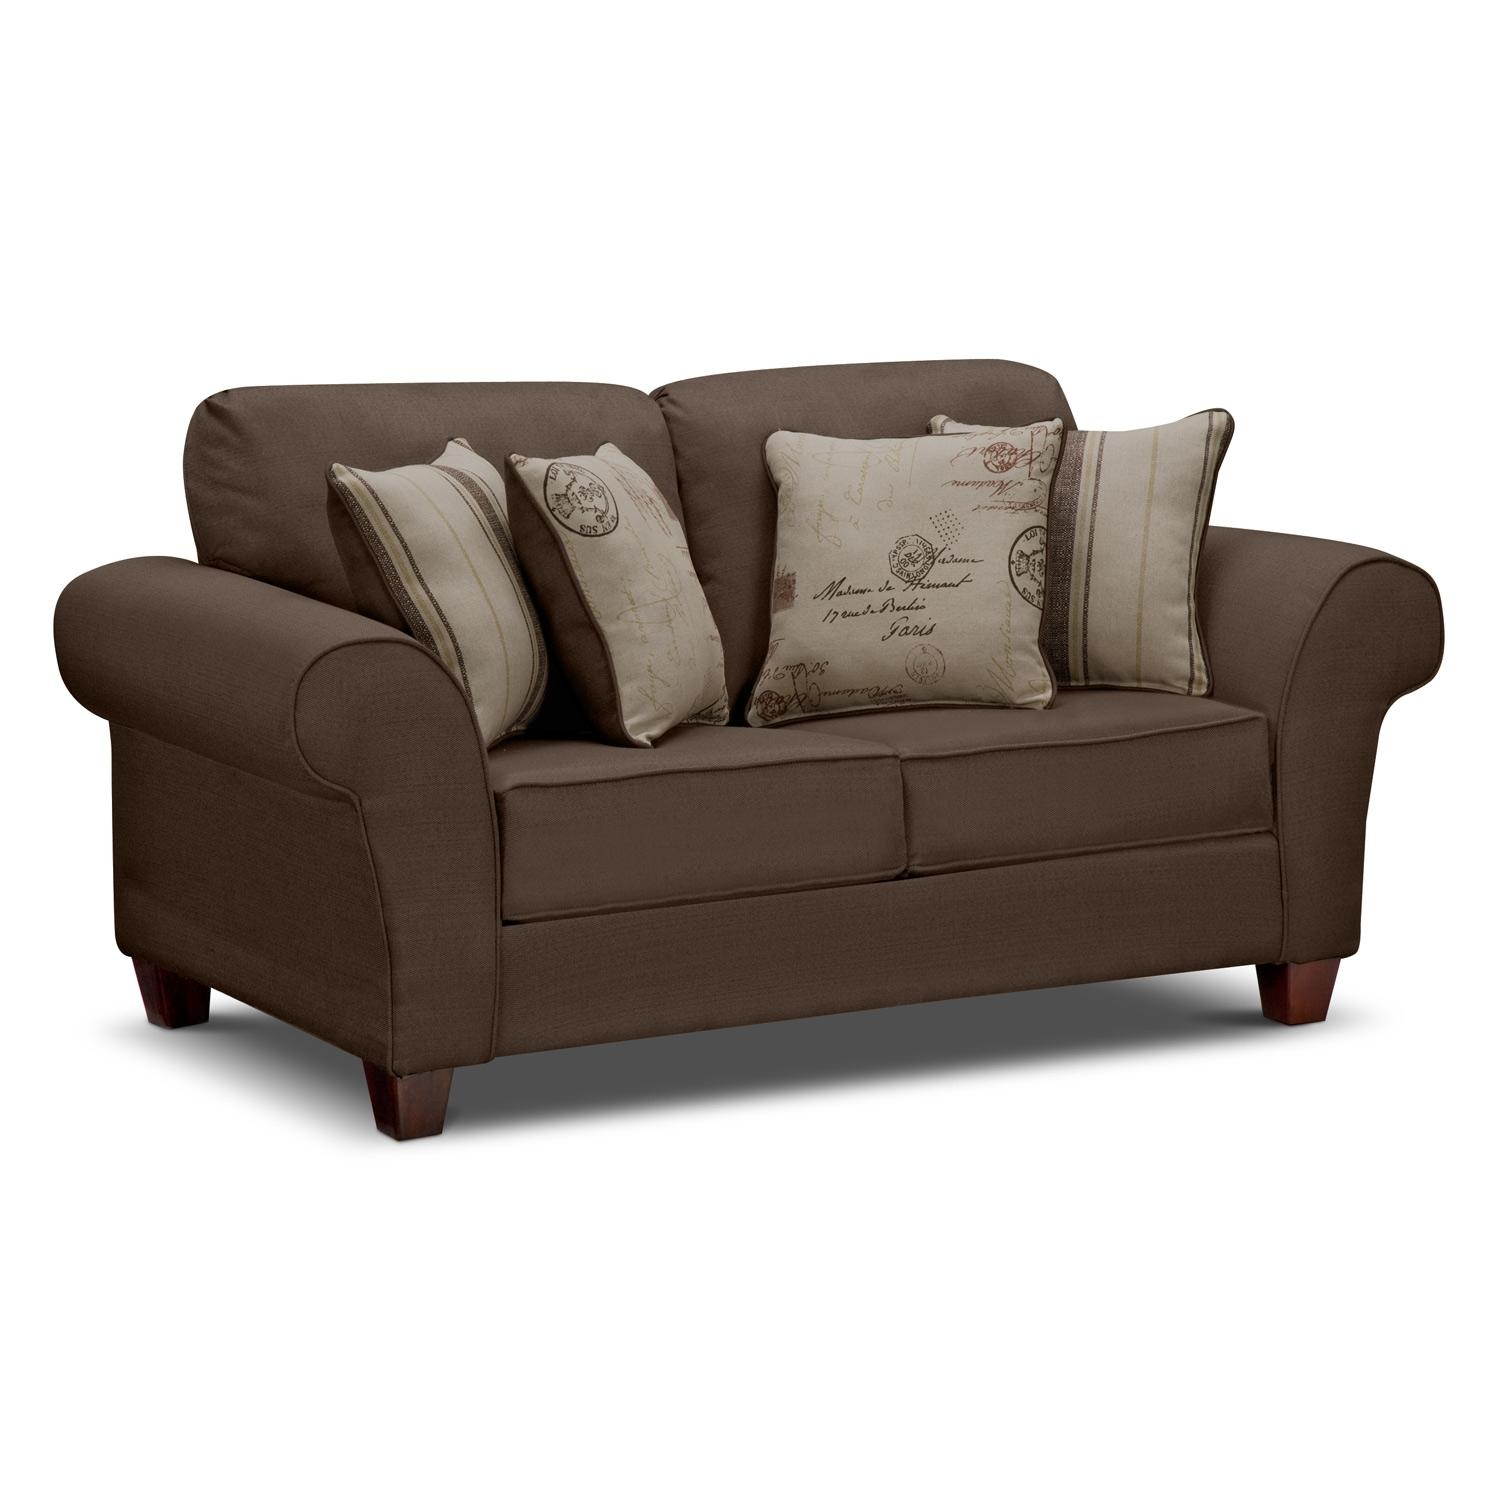 Sofas Center : Ikea Compact Couch Living Room Ideas Rooms Within Very Small Sofas (View 12 of 20)